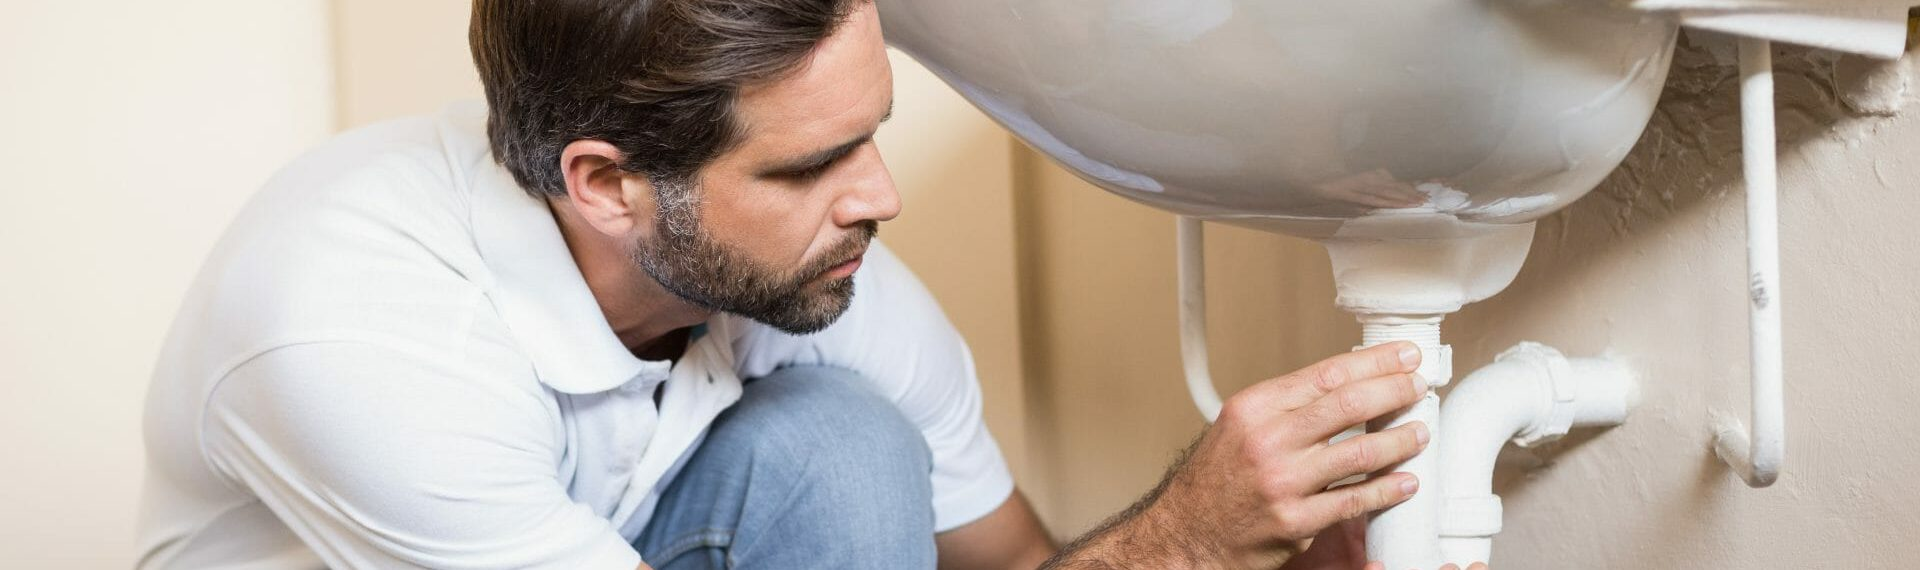 What is Plumber's Insurance?